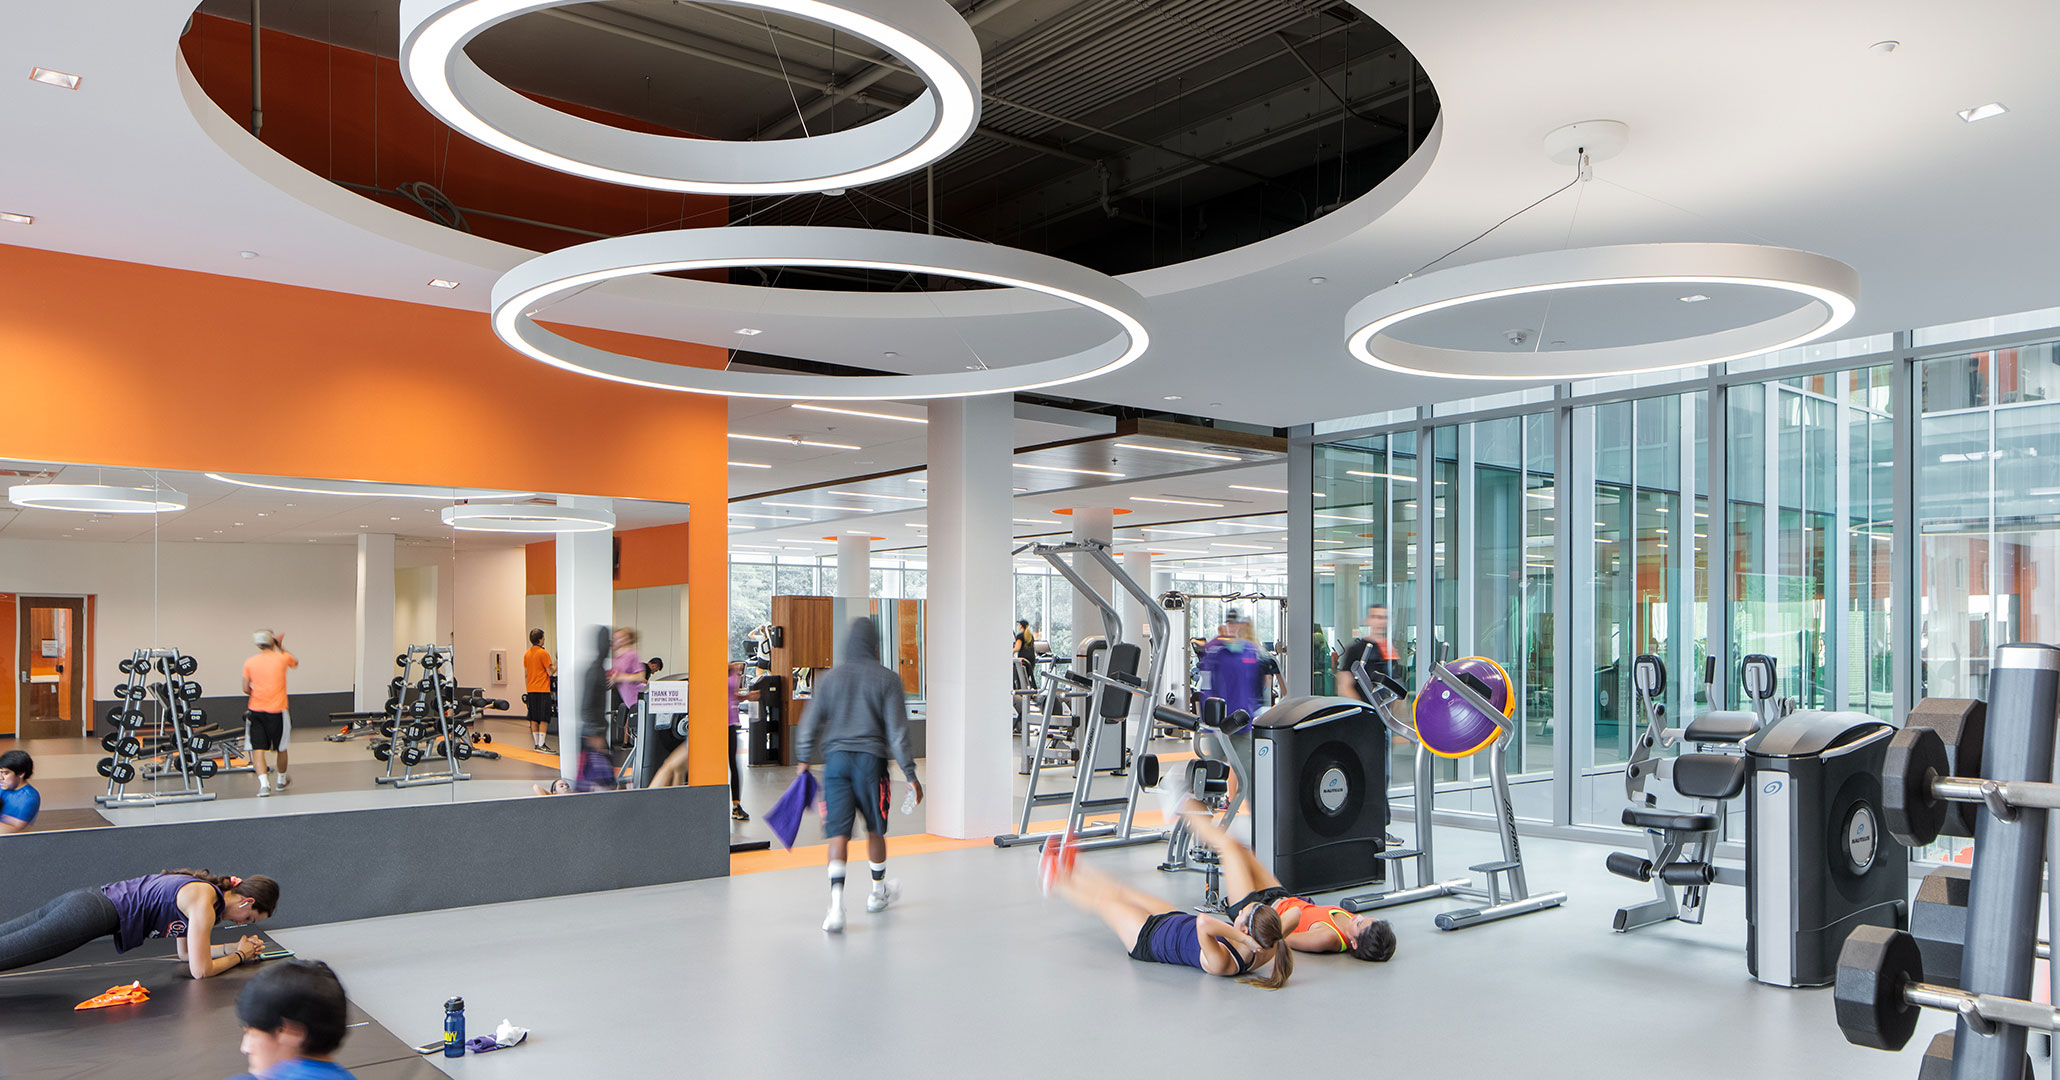 Clemson University worked with Boudreaux architects to design the gym at Douthit Hills Student Hub.